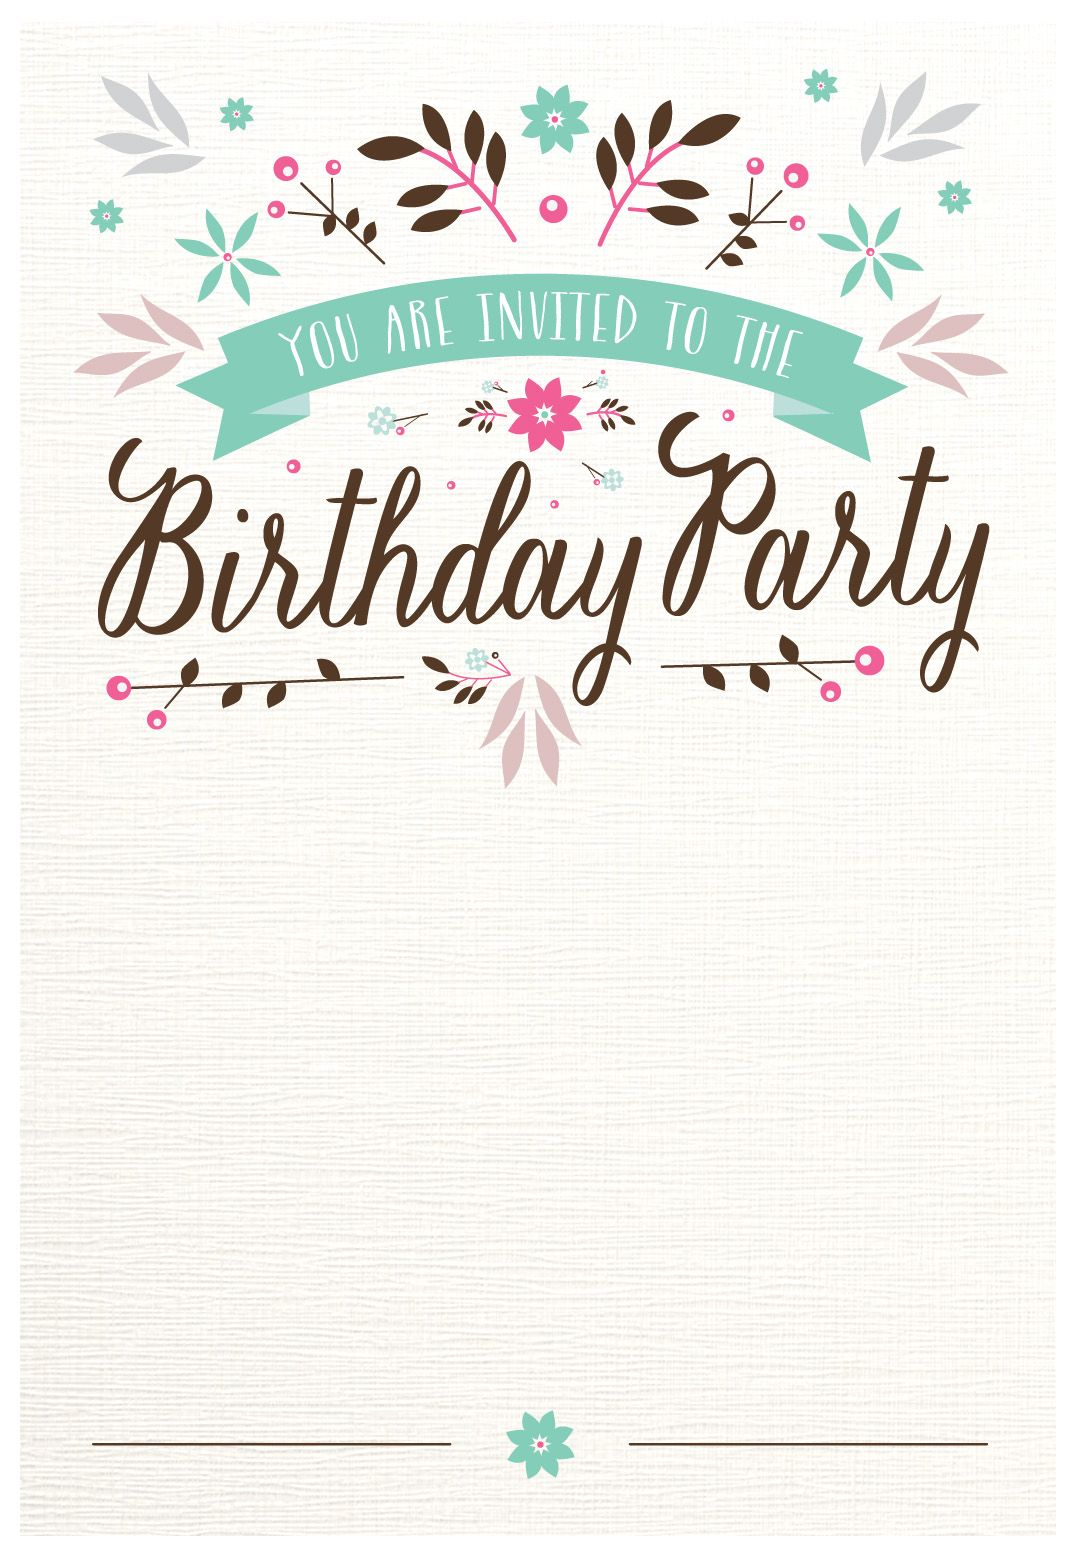 Flat Floral   Free Printable Birthday Invitation Template | Greetings Island  Free Customizable Invitation Templates